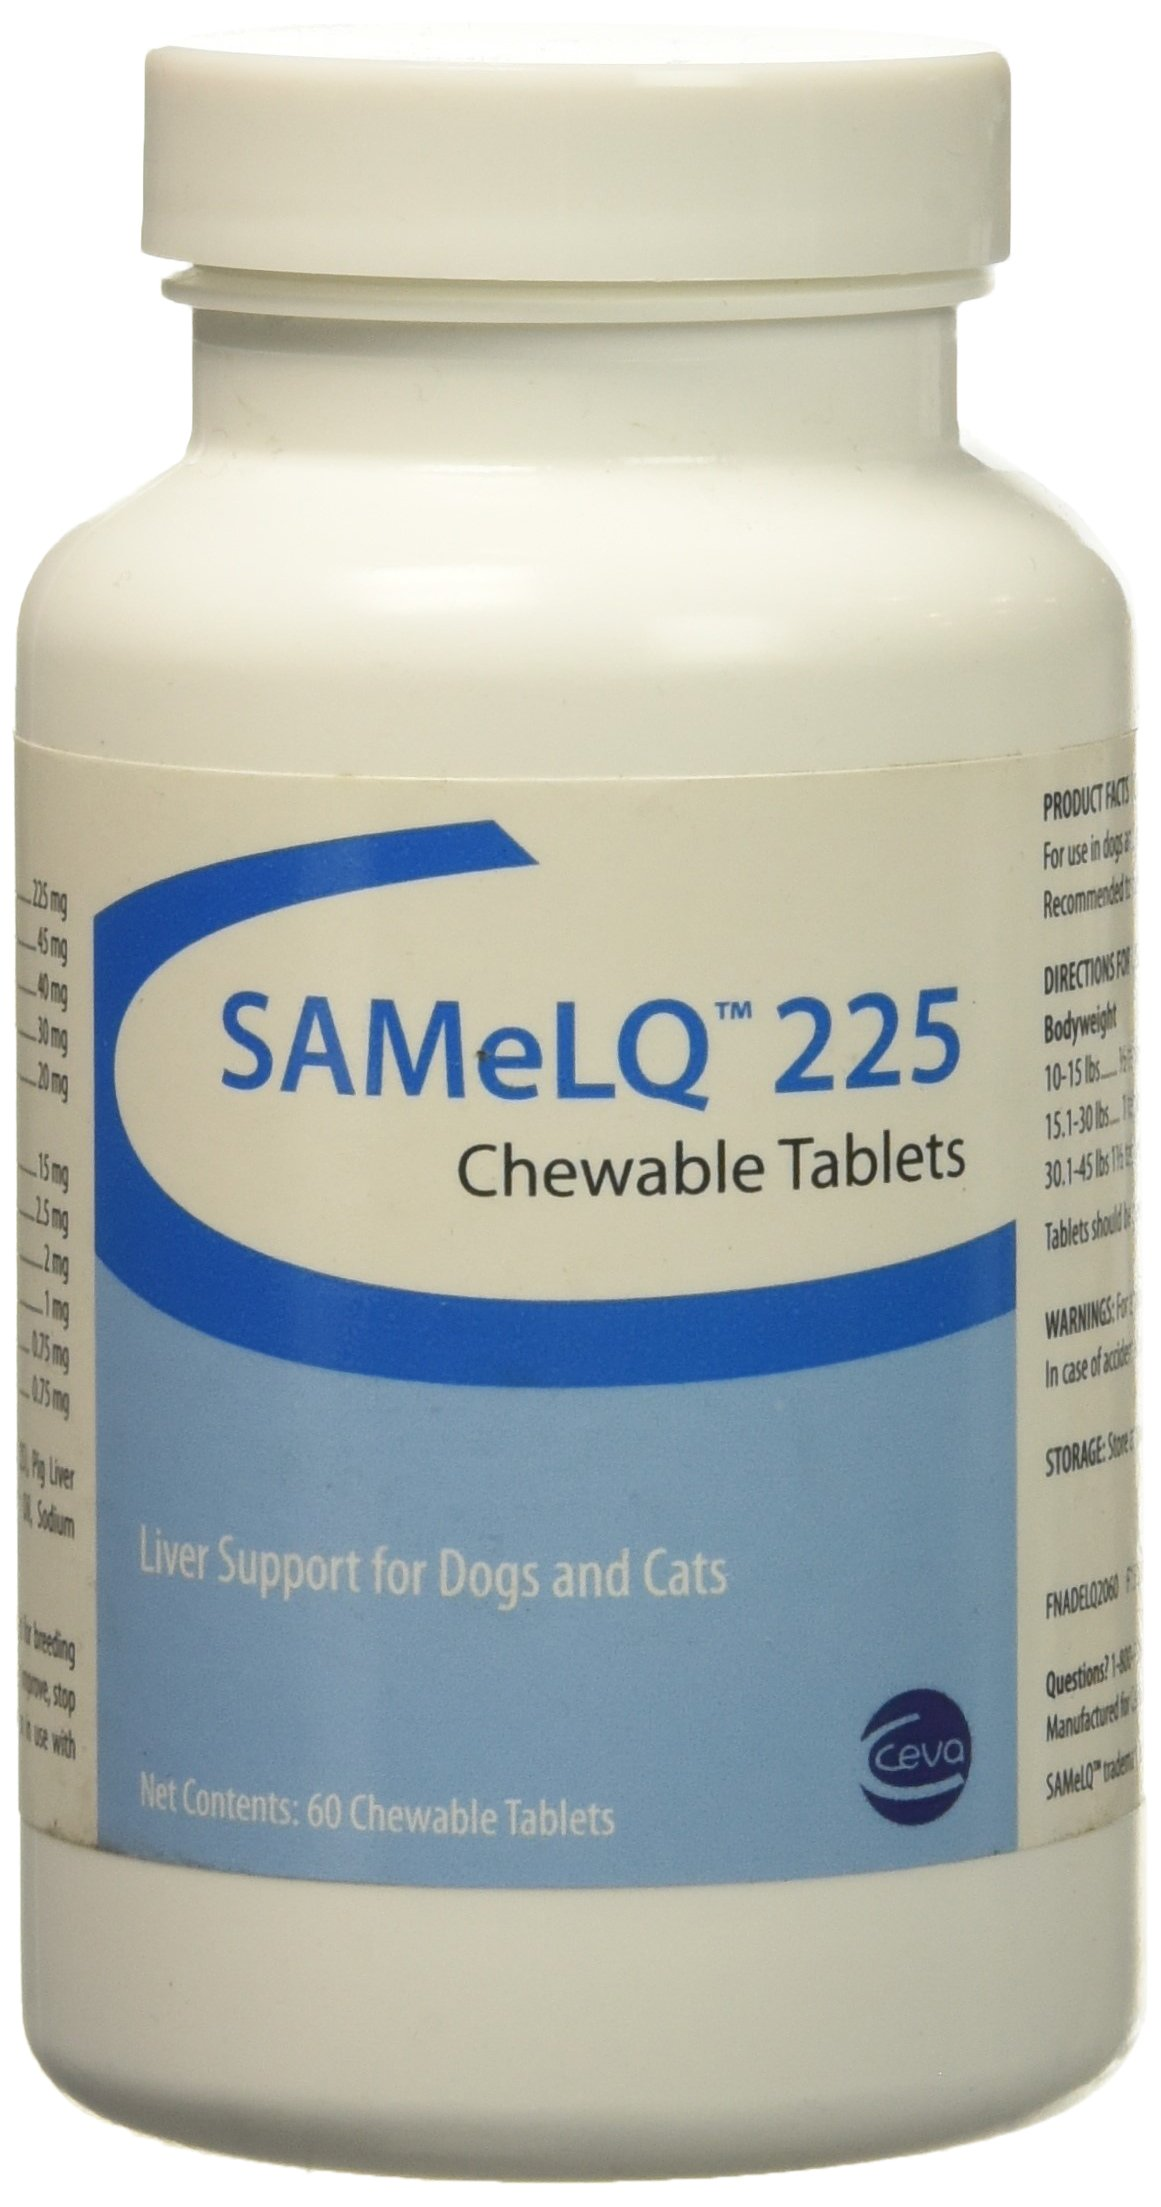 S Adenosyl 225 (SAMe) for MEDIUM / LARGE DOGS 225 mg (60 tabs) by Vitality